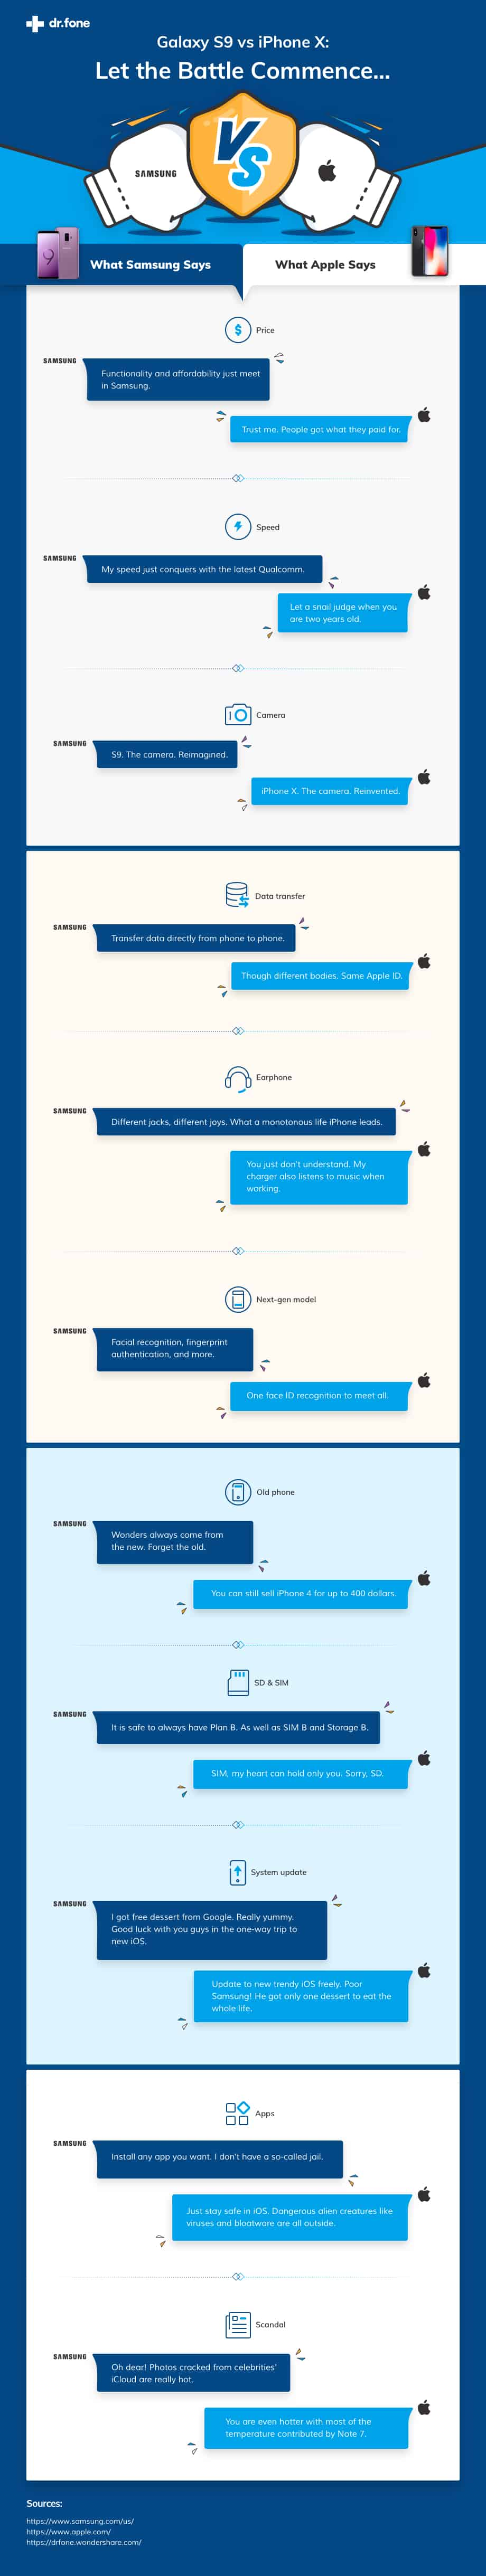 Apple Samsung Battle Infographic